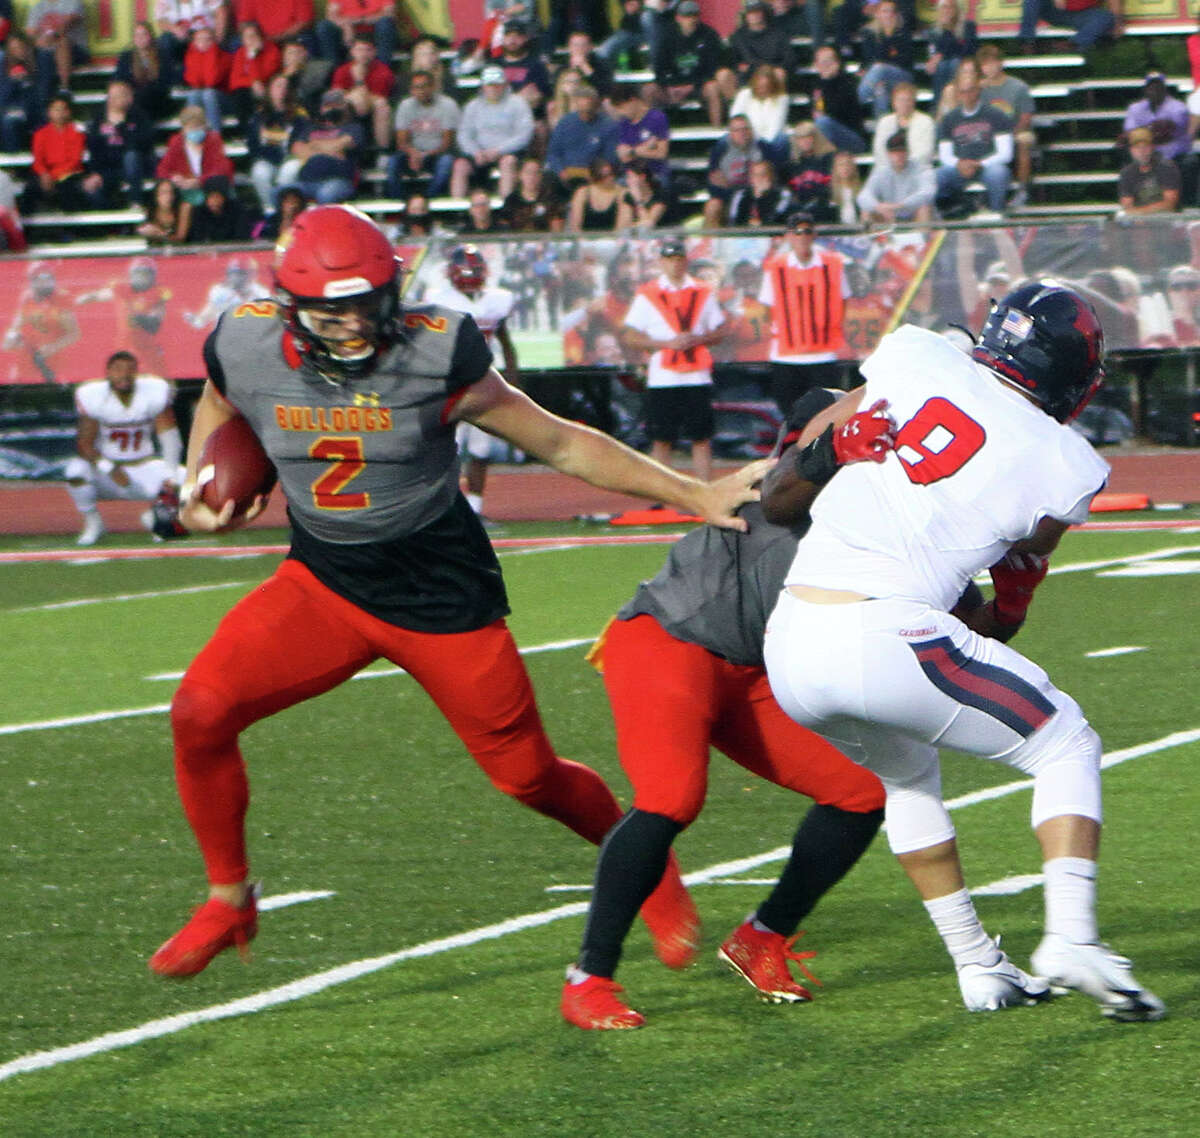 On Saturday evening, the Ferris State football team outlasted Saginaw Valley State in overtime by a final score of xx-xx at Top Taggart Field.